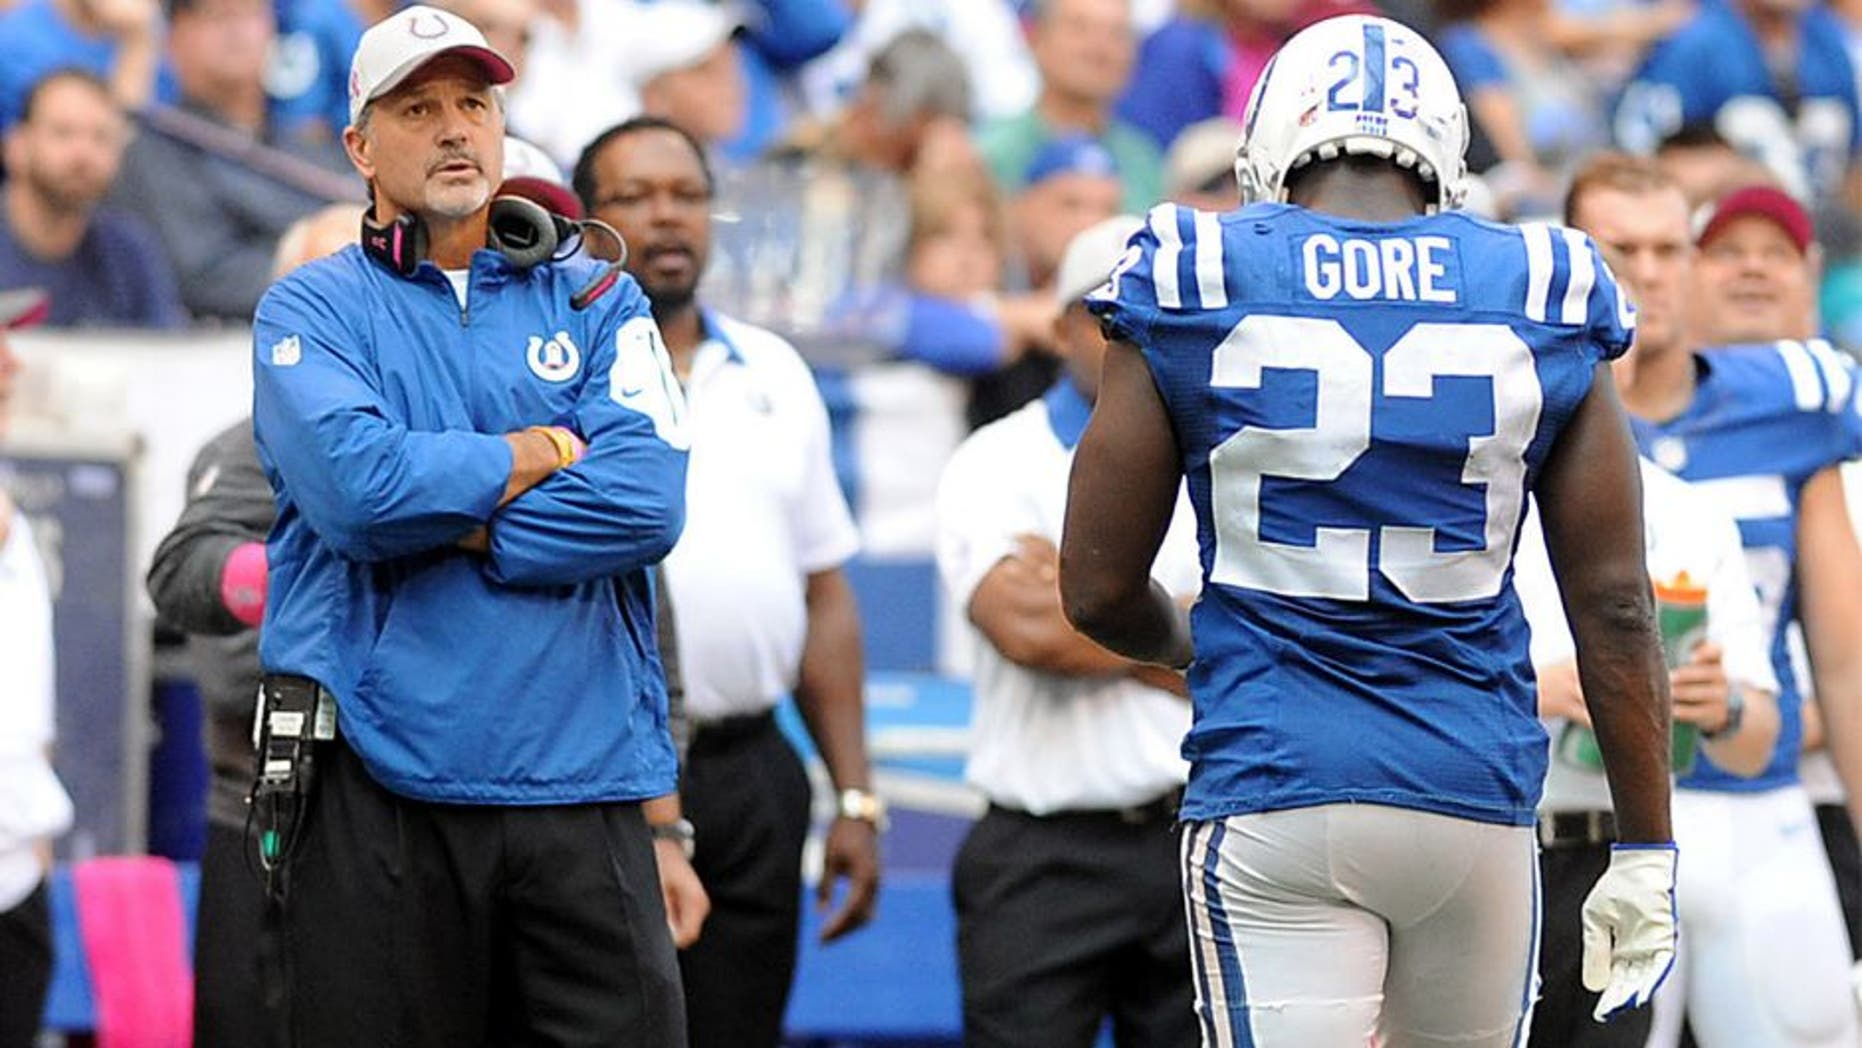 Oct 4, 2015; Indianapolis, IN, USA; Indianapolis head coach Chuck Pagano looks on as Colts running back Frank Gore (23) fumbled close to the goal line in the closing minutes of their game against the Jacksonville Jaguars at Lucas Oil Stadium. Mandatory Credit: Thomas J. Russo-USA TODAY Sports